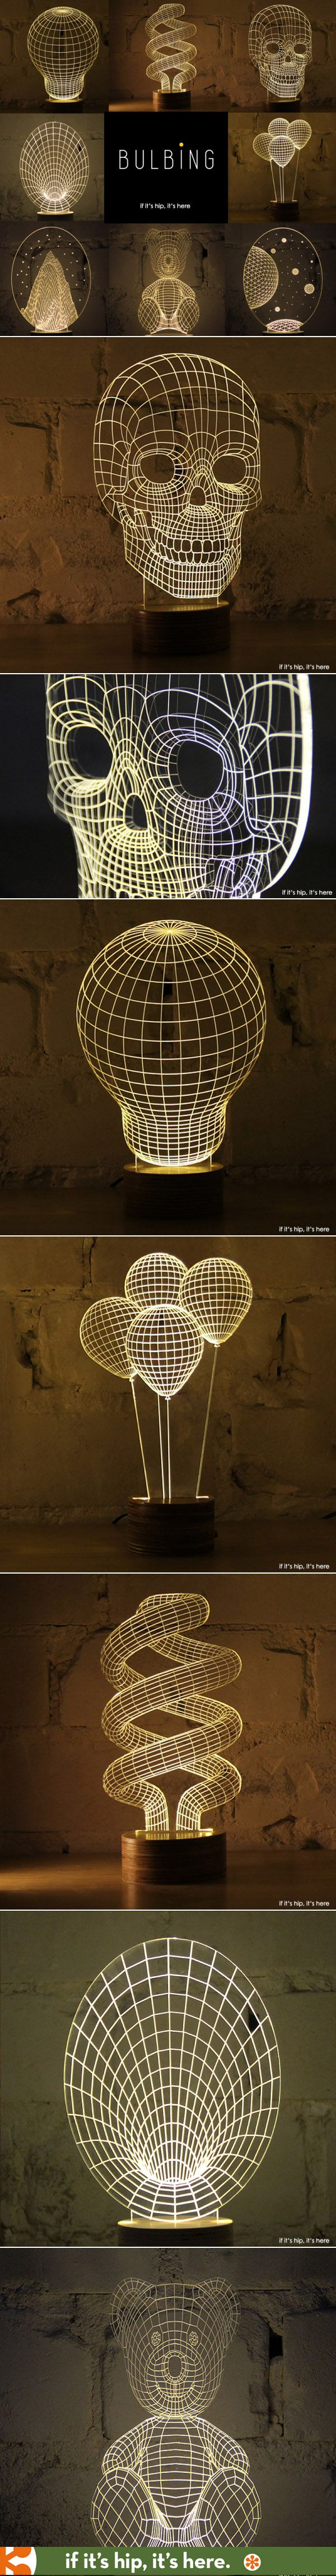 These are 3D lamps and I think they are made out of wires but since it's 3D, it looks realistic but it looks a bit complicated to make them.